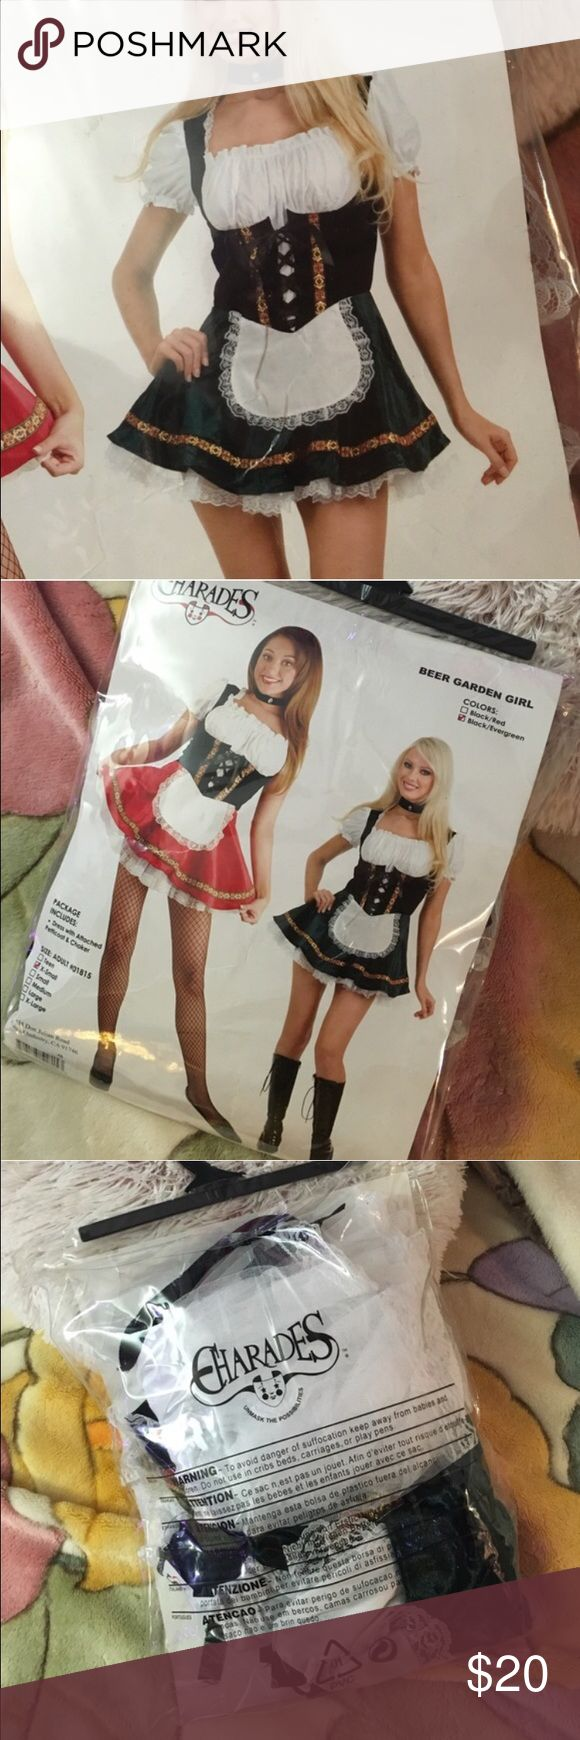 ✨nwt✨ beer garden girl costume got this as a gift & wanted to wear it to oktoberfest but never got a chance to go. black/green. comes with dress with attached petticoat & choker. never worn and has no flaws! not from listed brand (exposure). Hot Topic Dresses